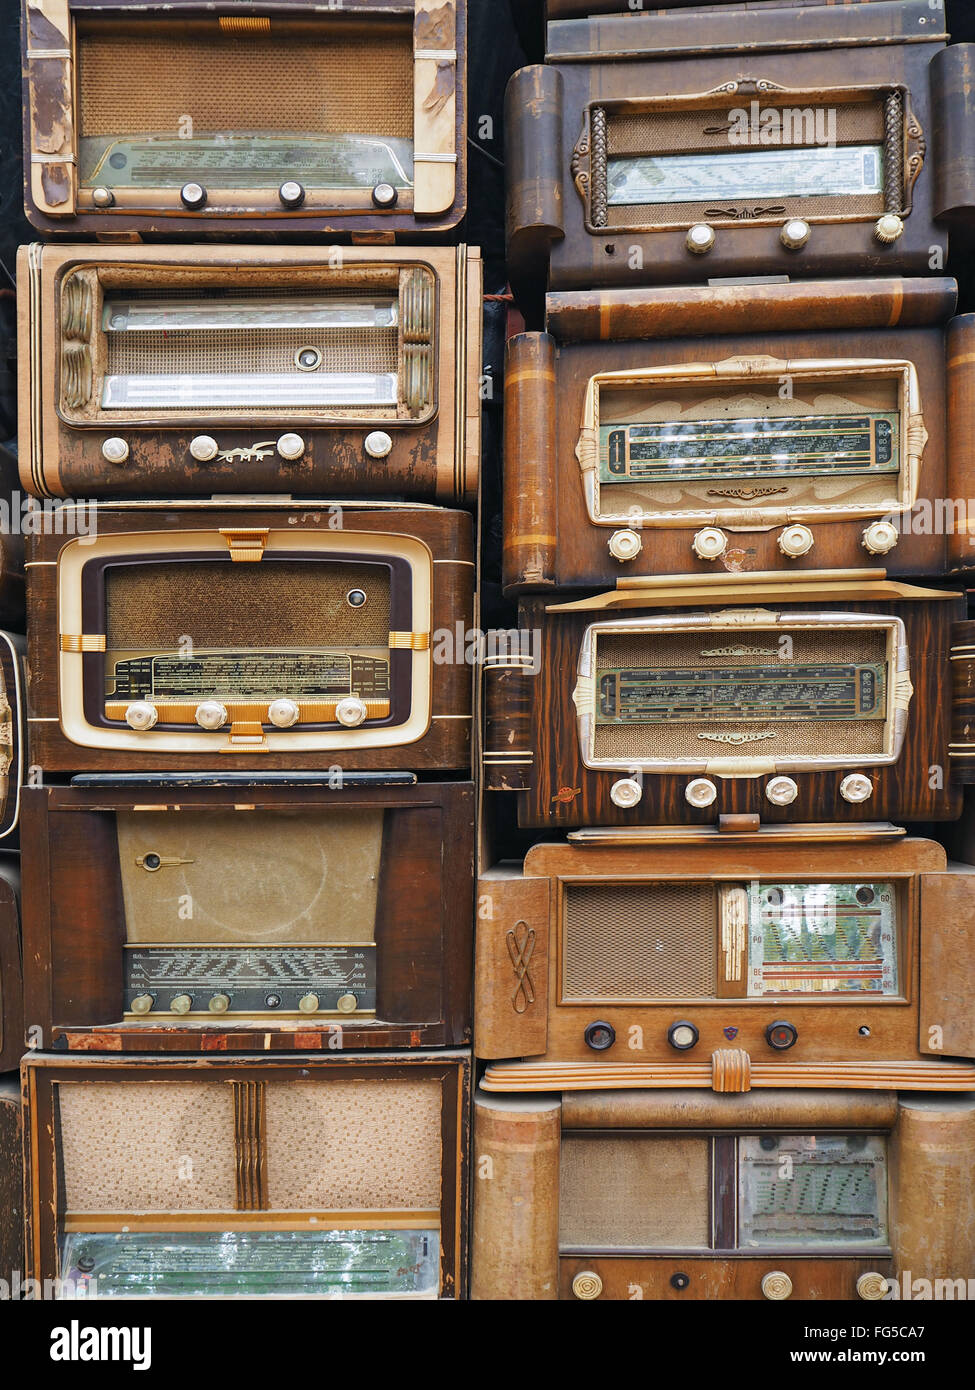 Retro Styled Radios In Store - Stock Image